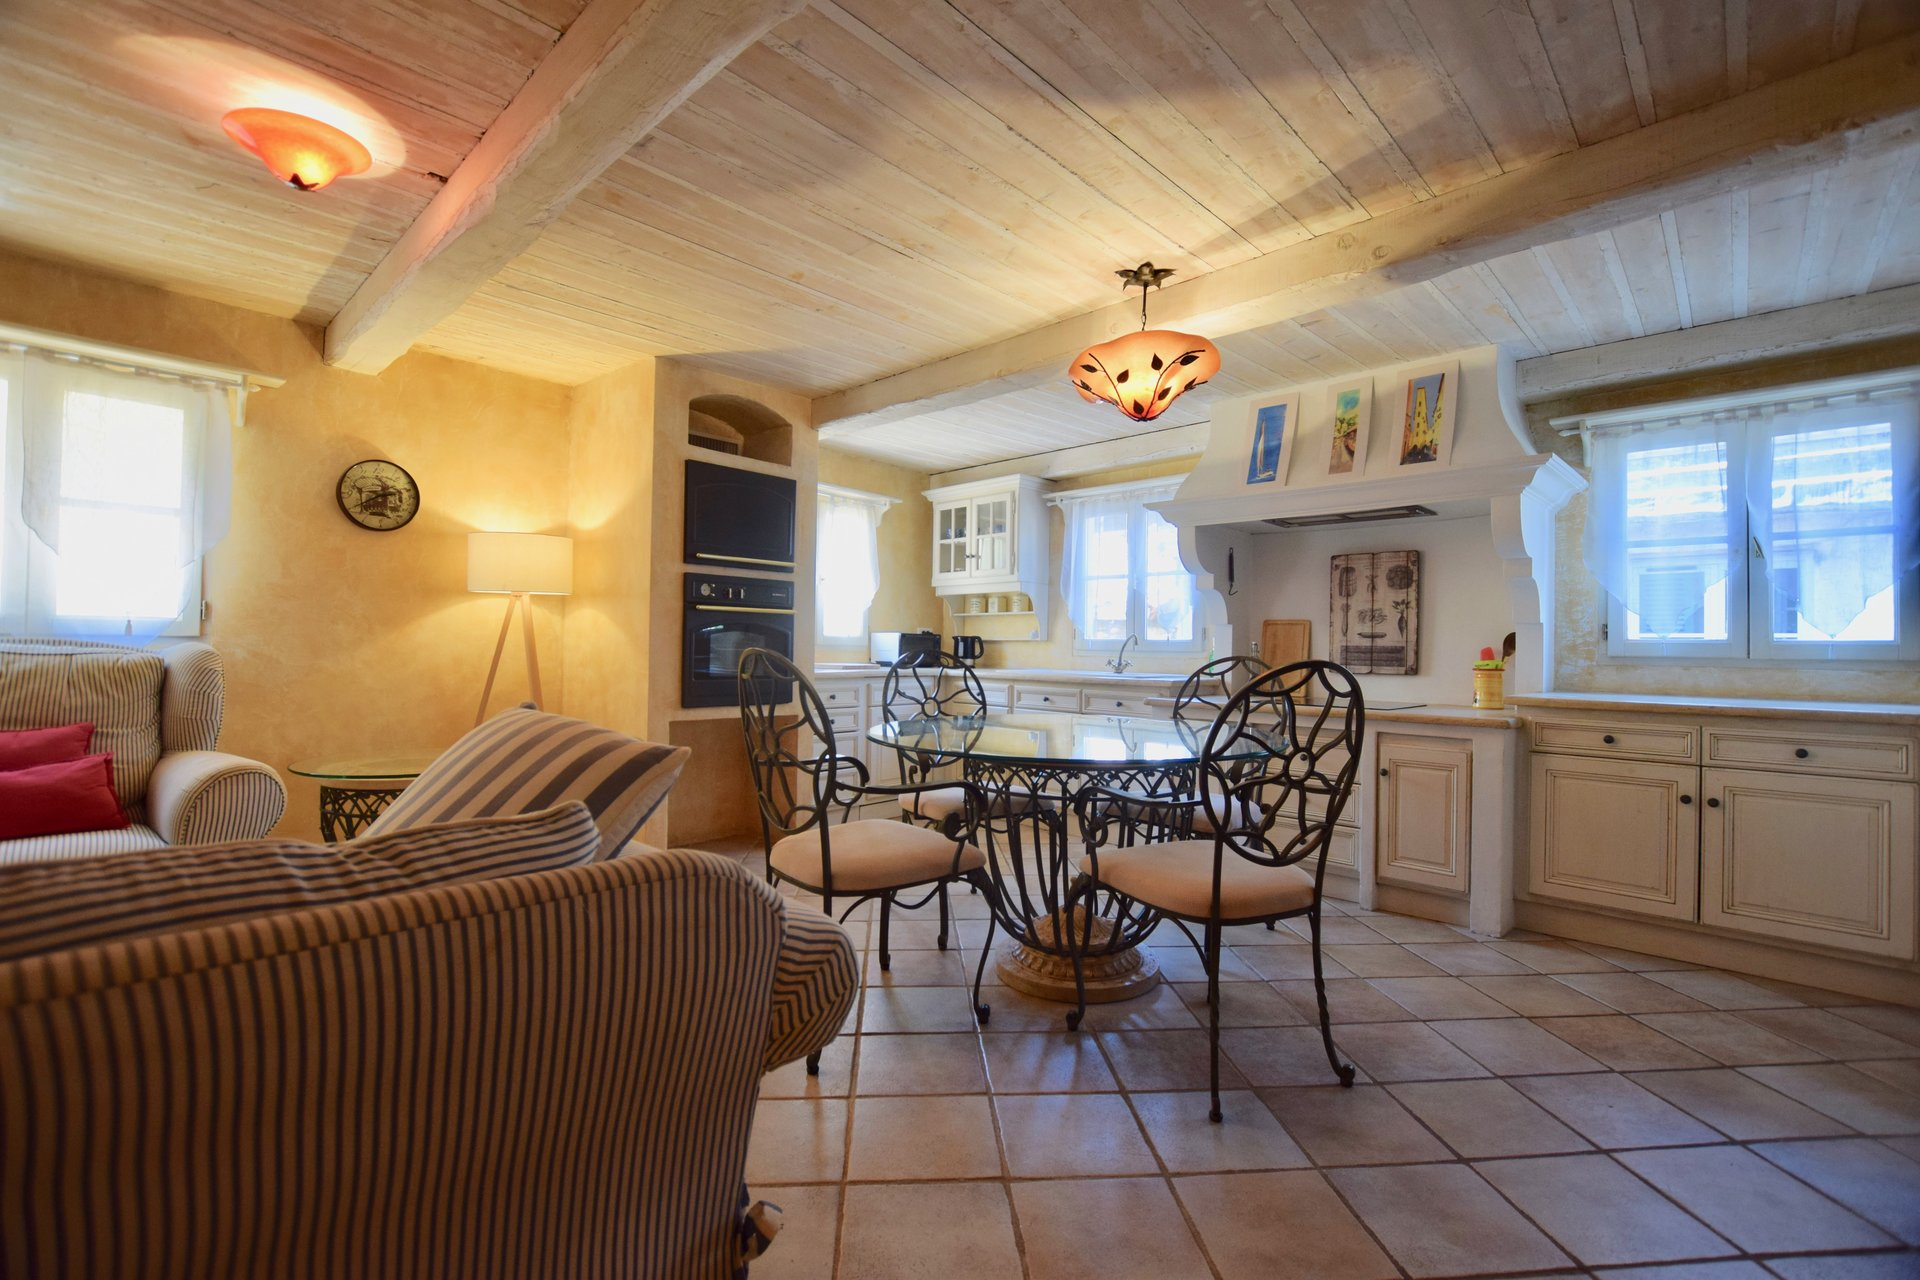 FOR SALE TOWN HOUSE IN THE OLD TOWN OF ANTIBES